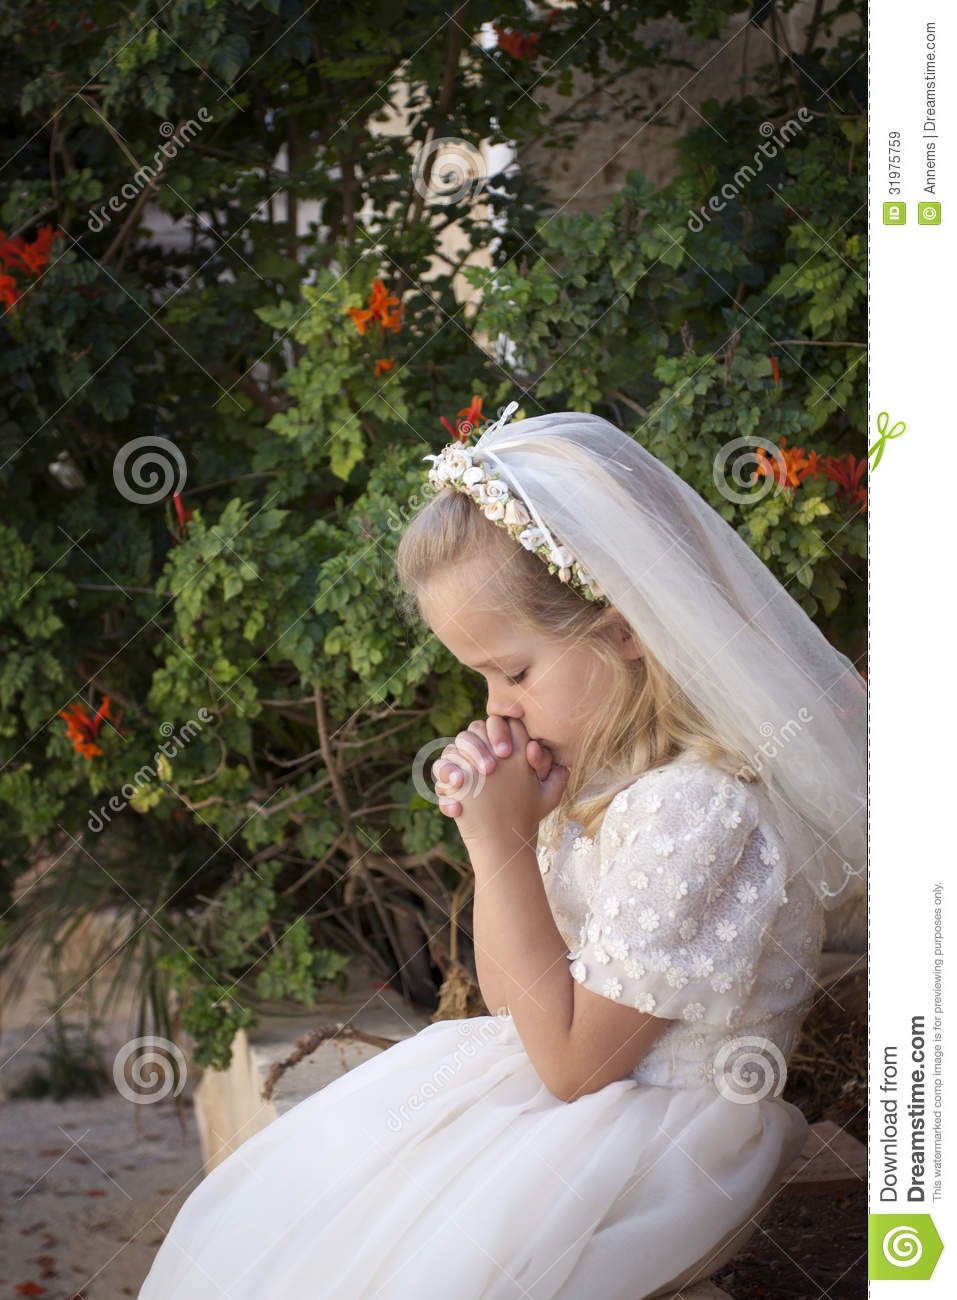 Praying Girl First Holy Communion Royalty Free Stock Images Image 31975759